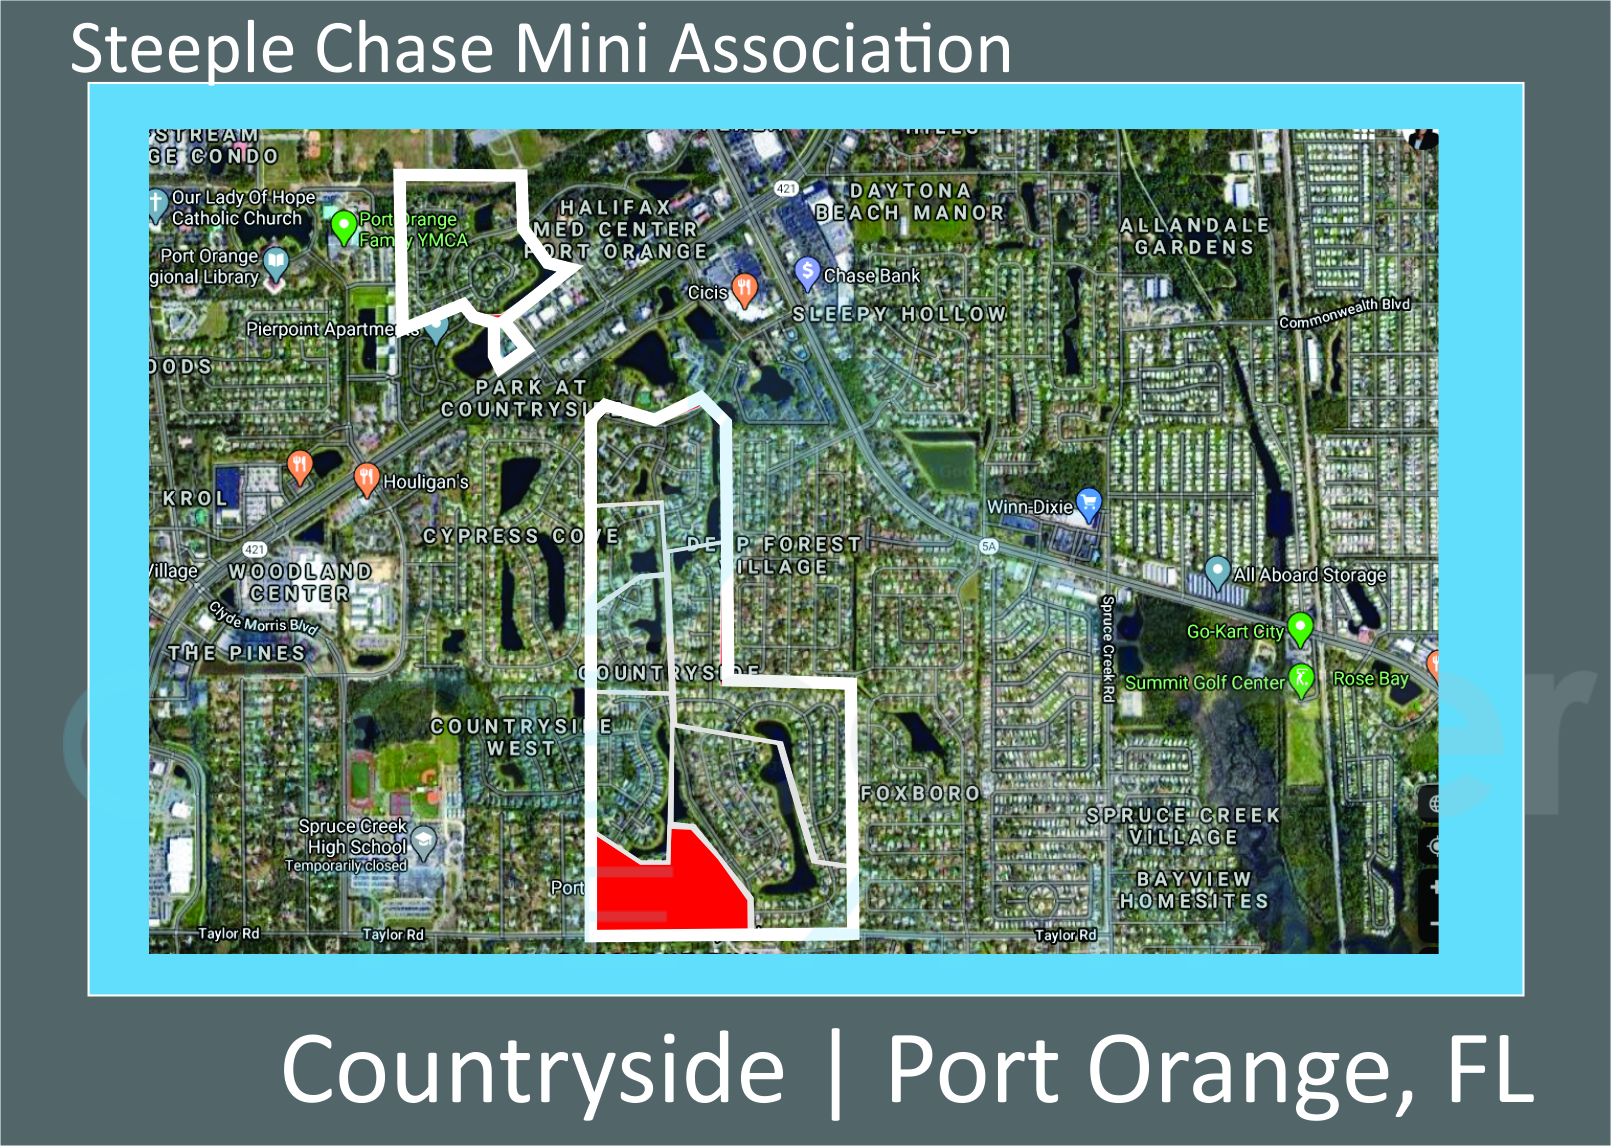 Map of Steeple Chase section of Countryside